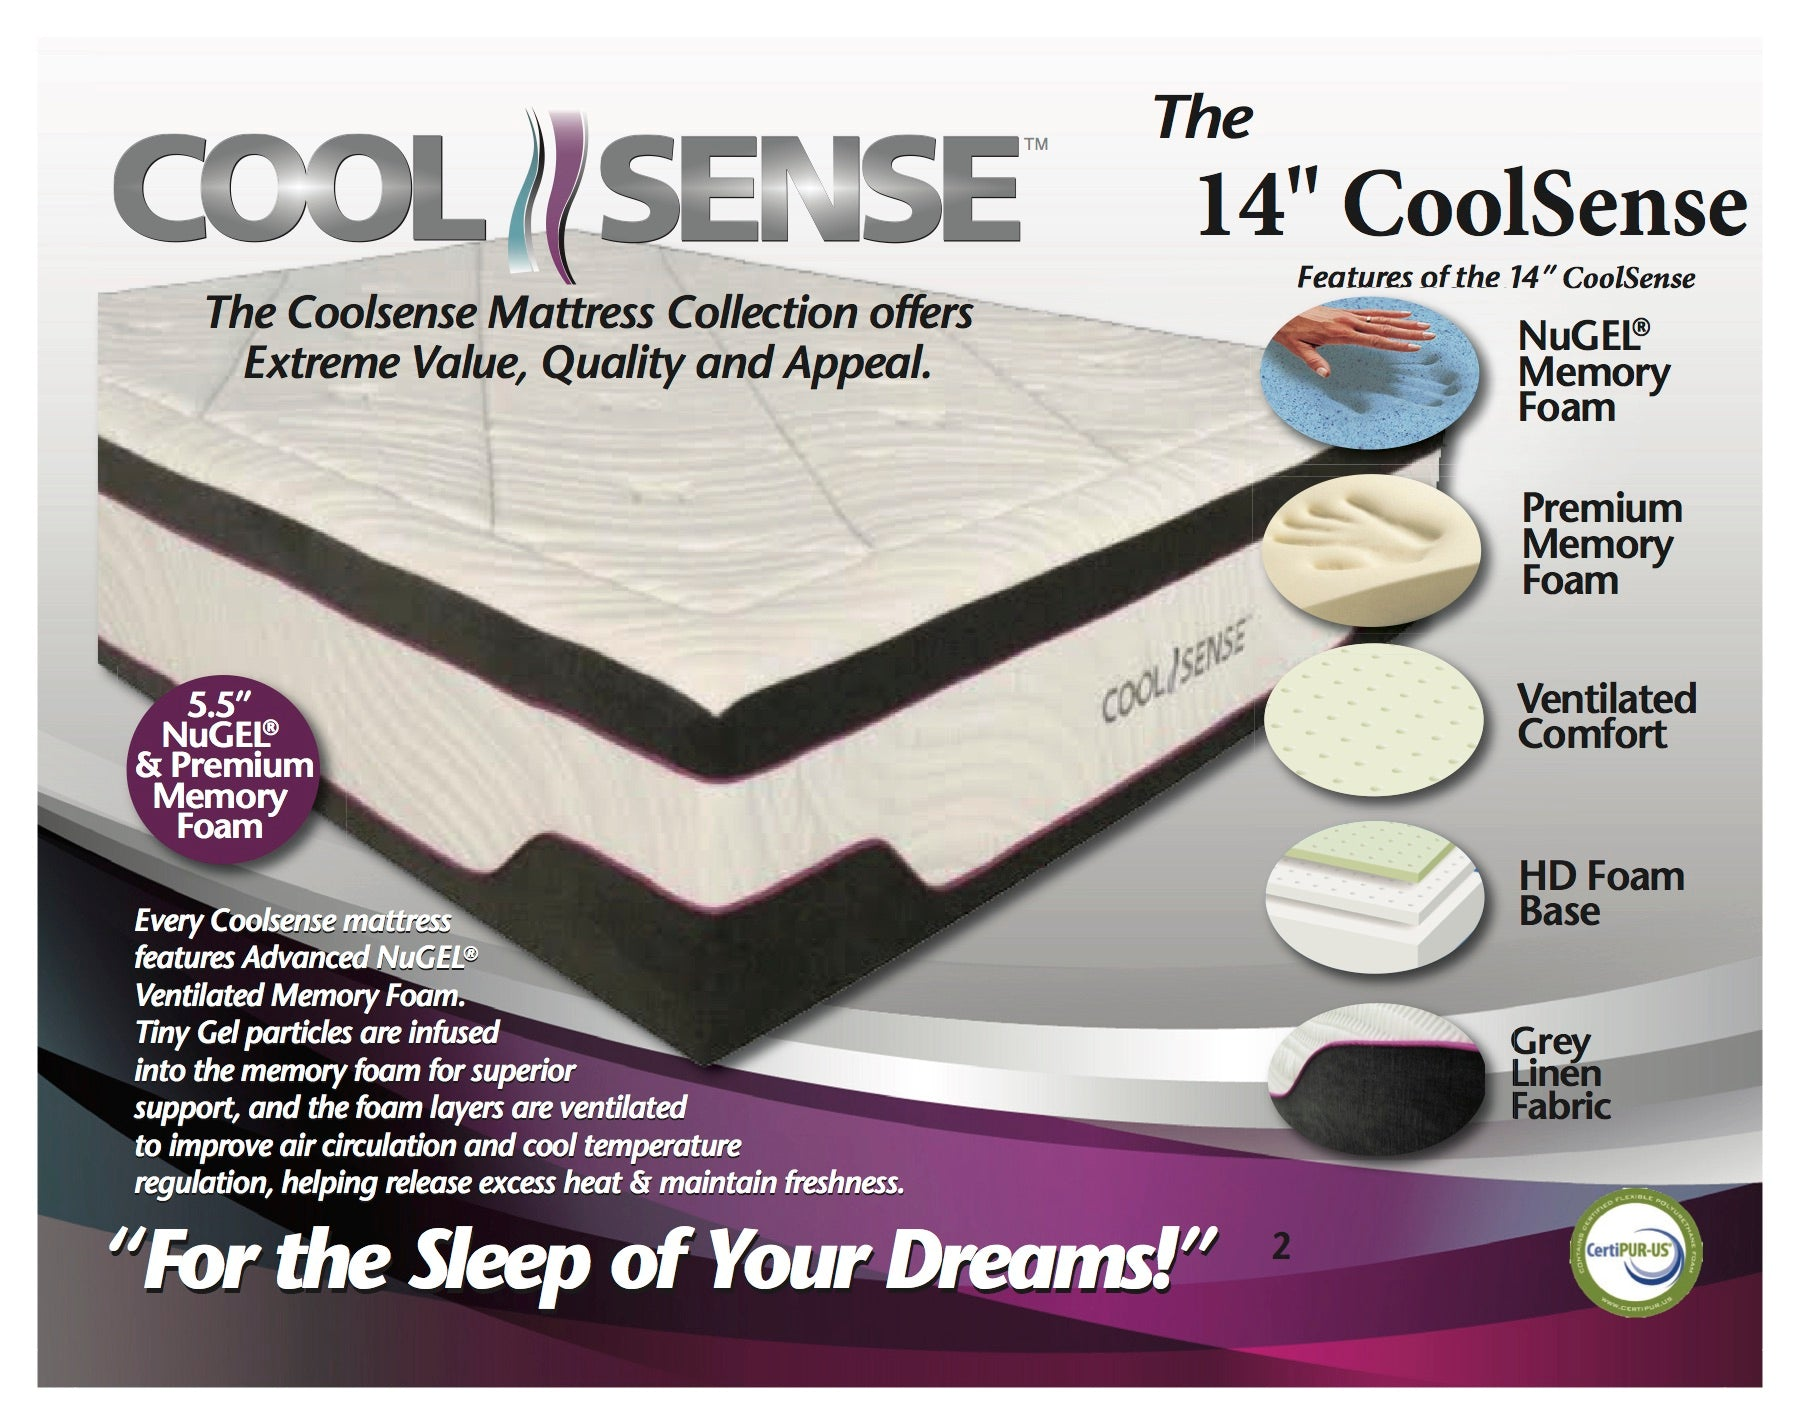 "The 14"" CoolSense"